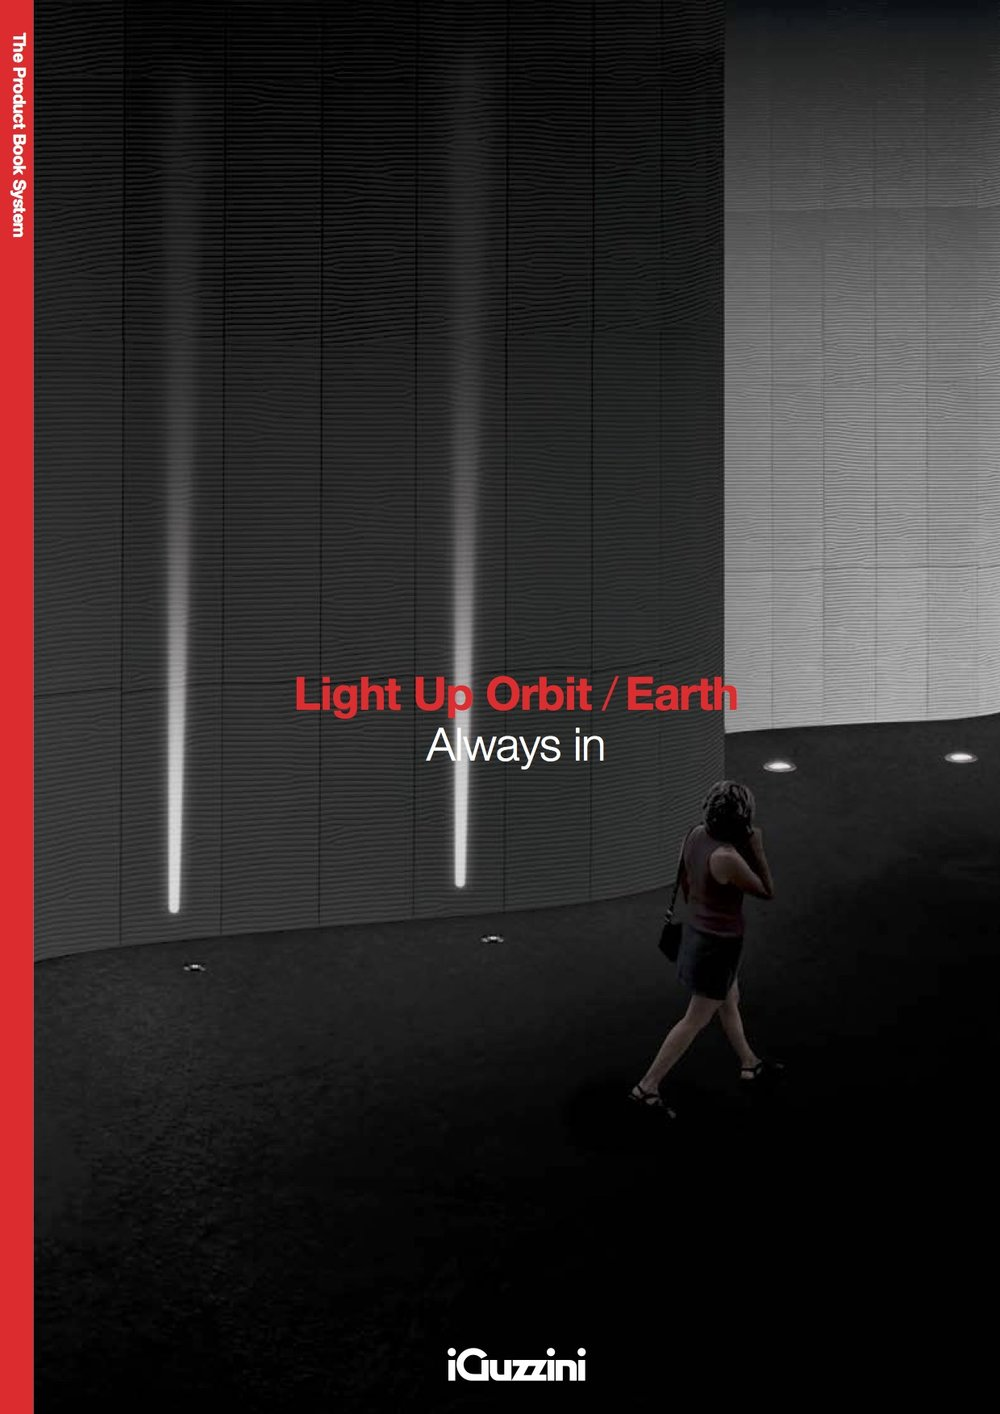 Light Up Orbit